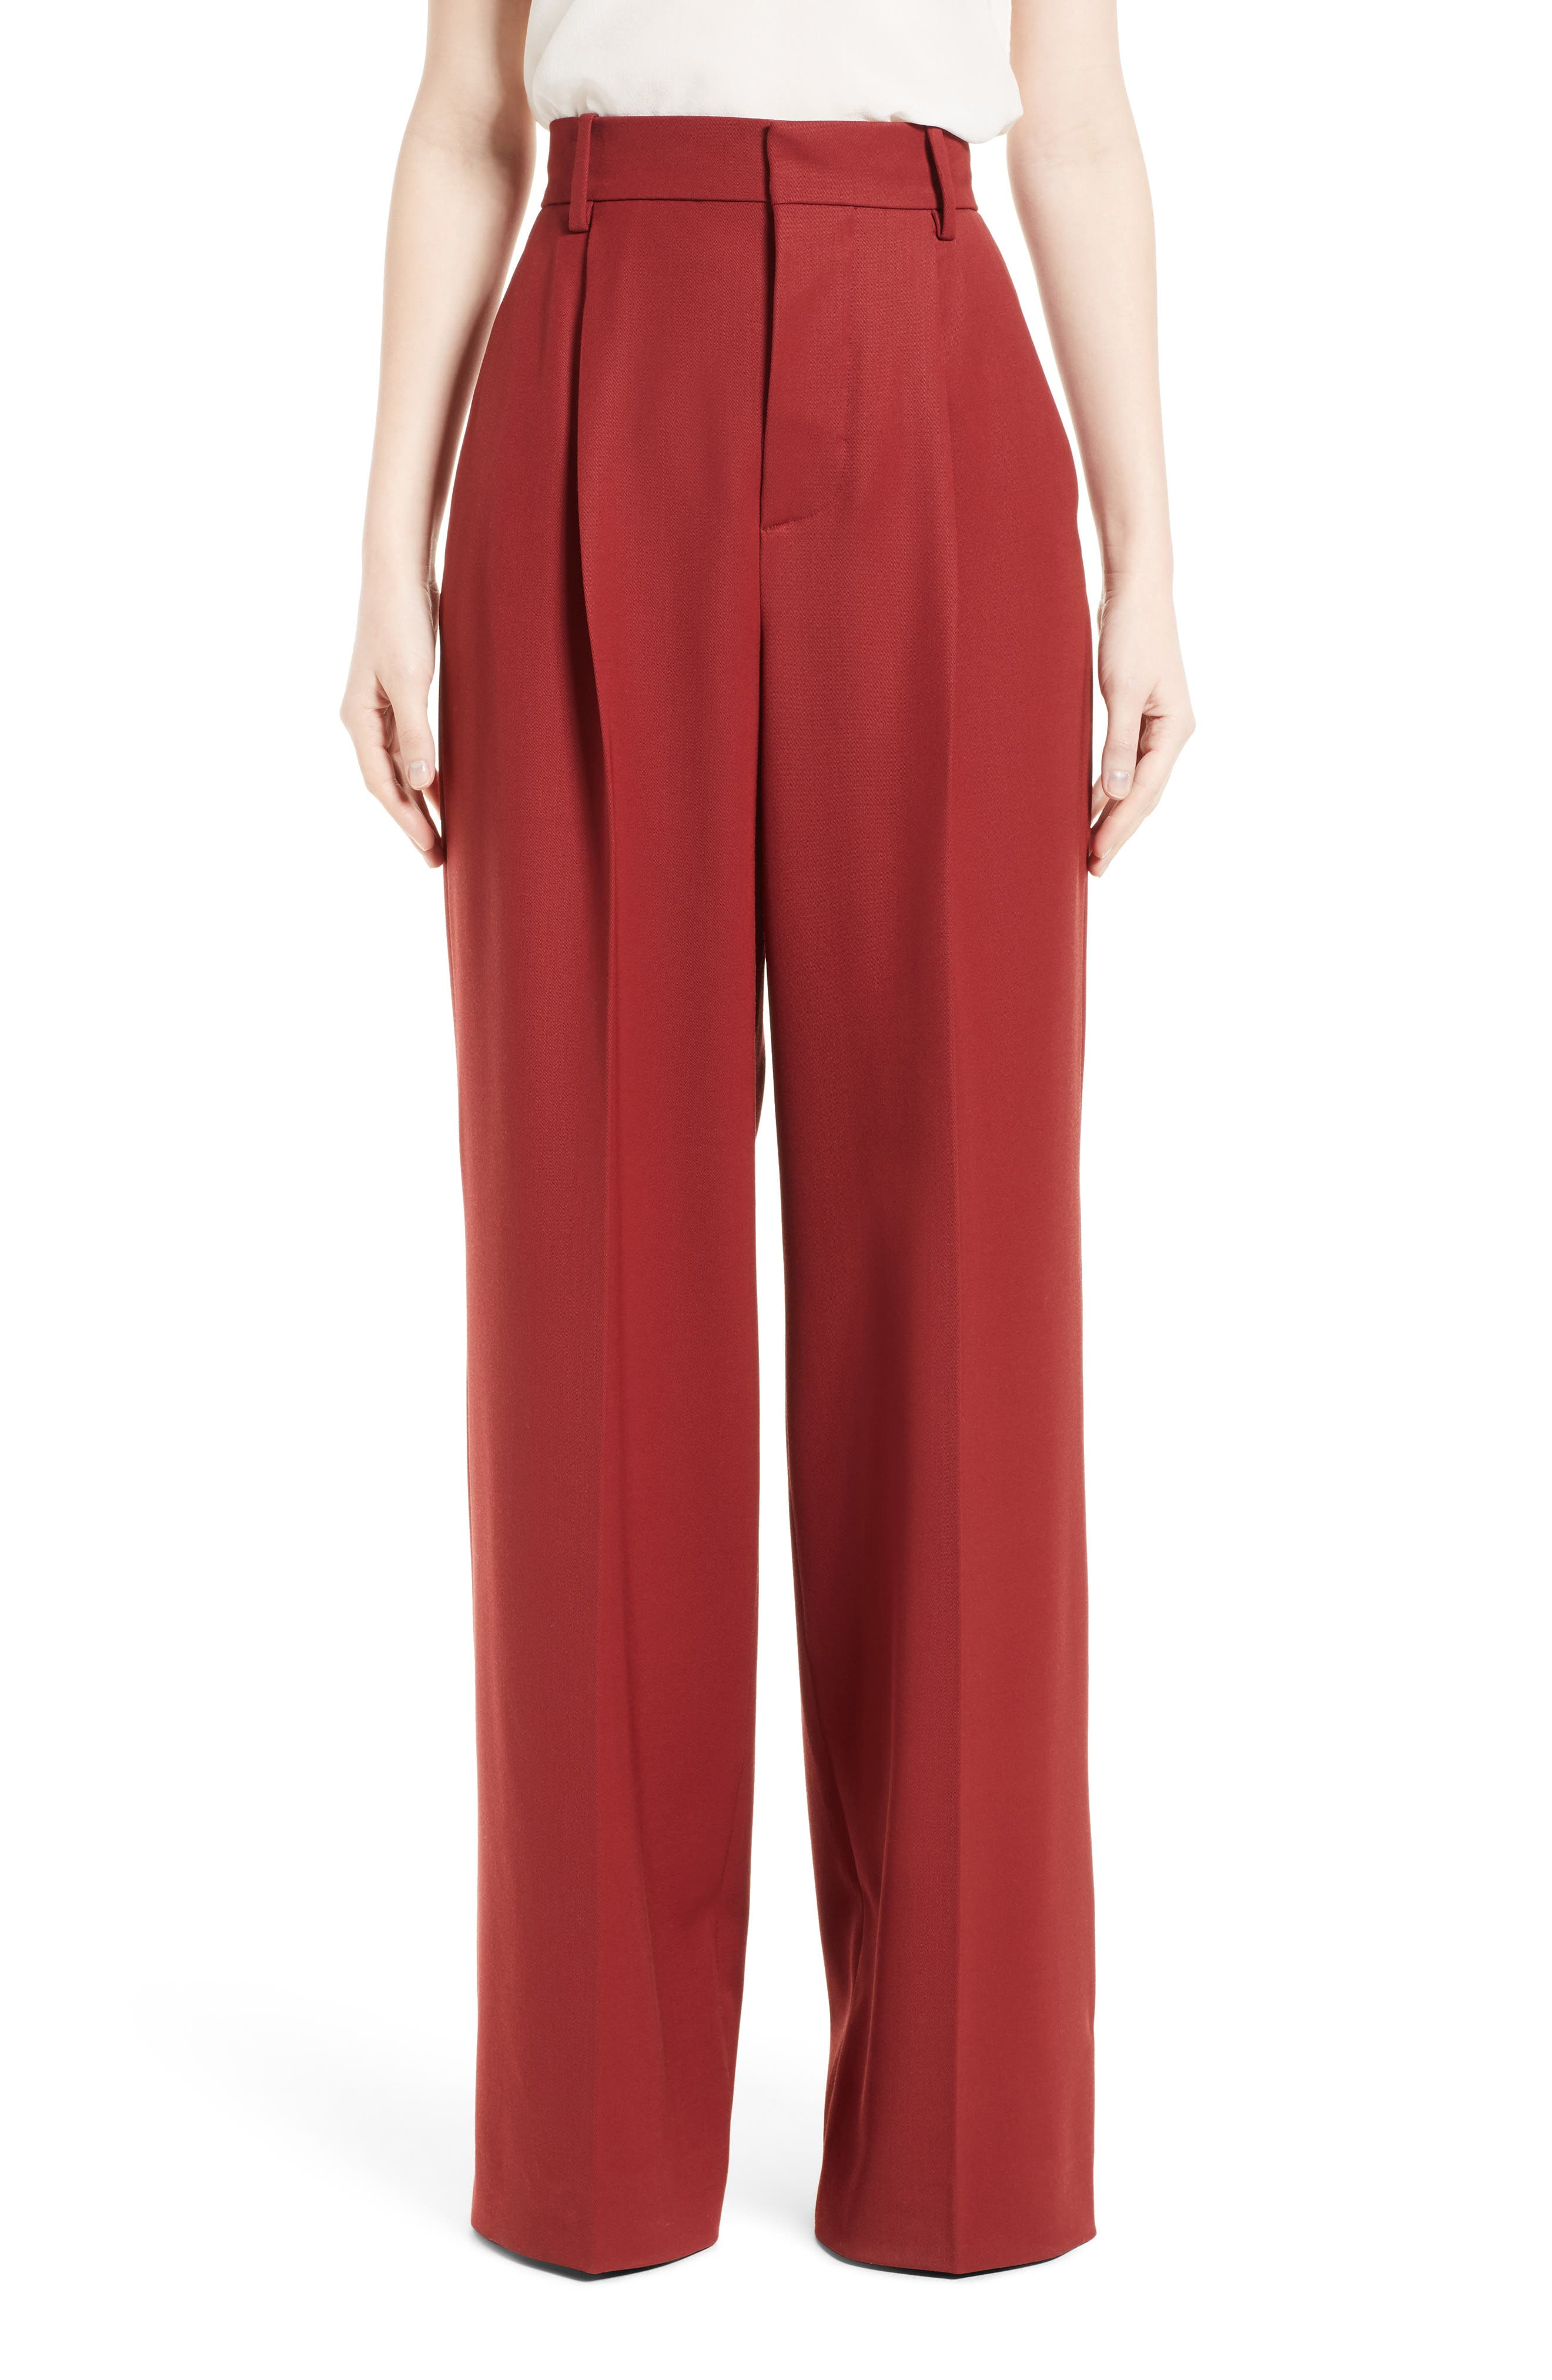 Stretch Wool Wide Leg Pants,                             Main thumbnail 1, color,                             930